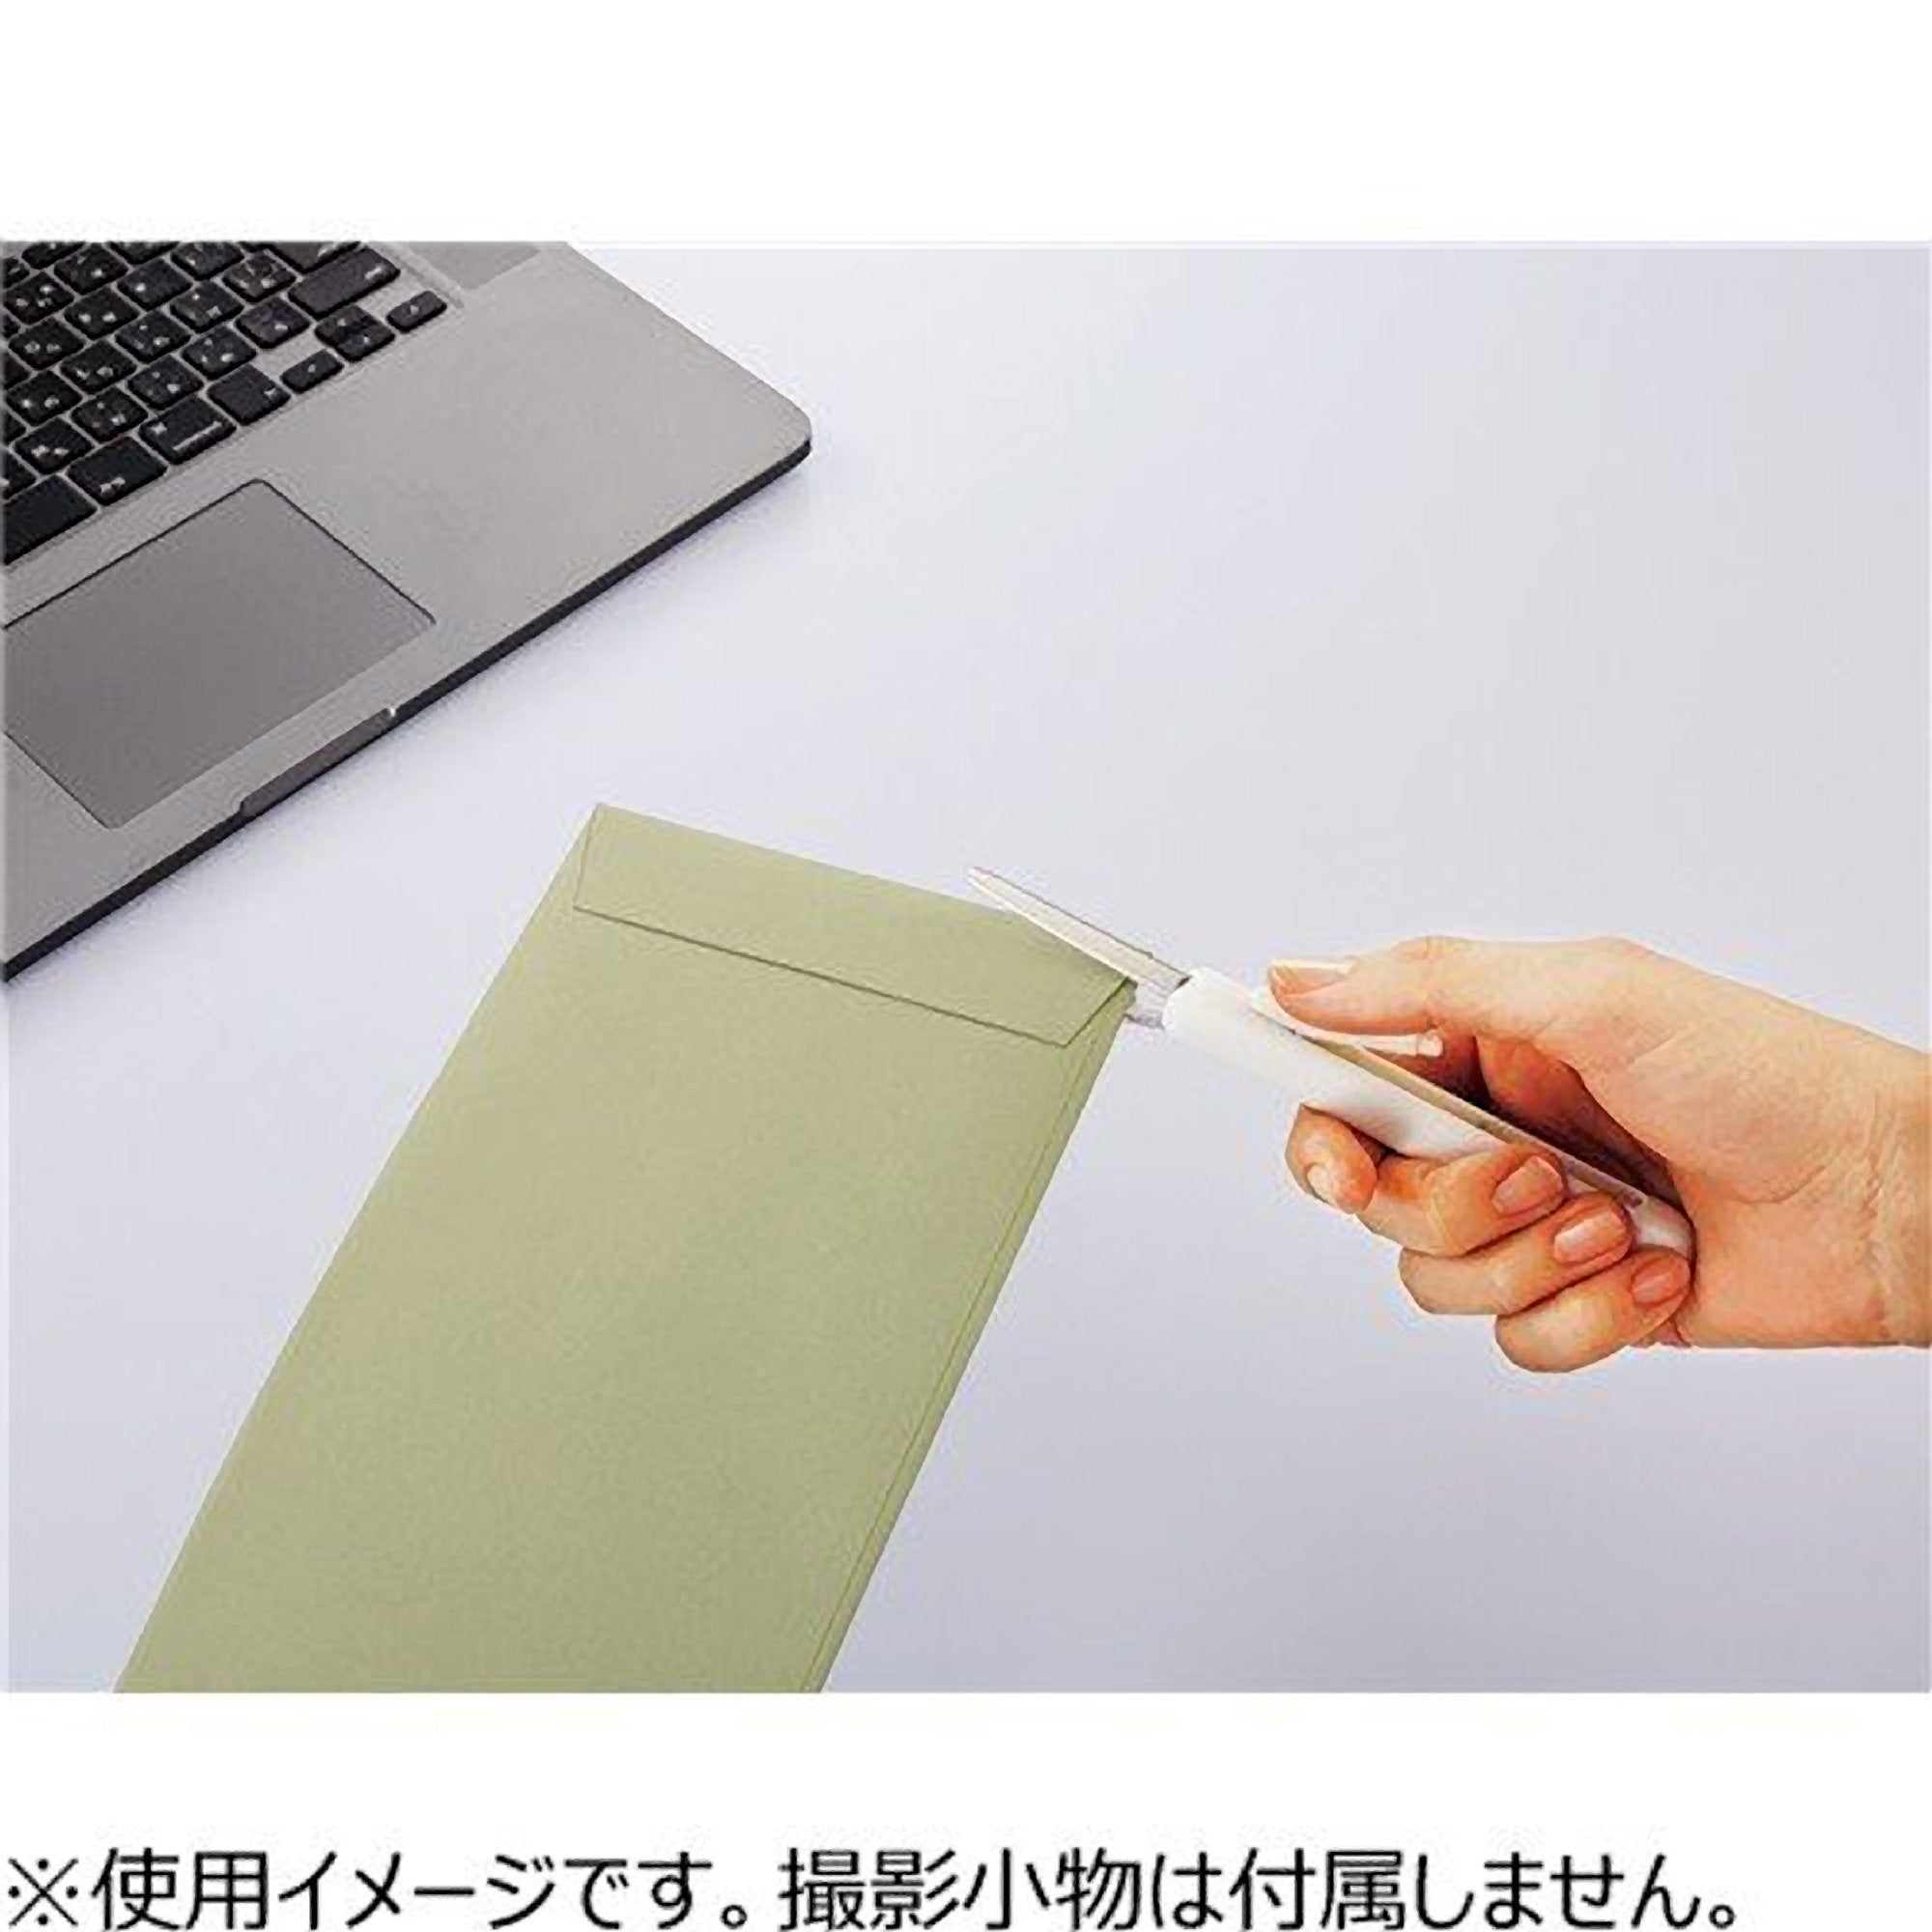 Kokuyo SAXA POCHE PEACH Mobile Scissors Portable Scissors Folding Scissors Compact Scissors - The Stationery Life!